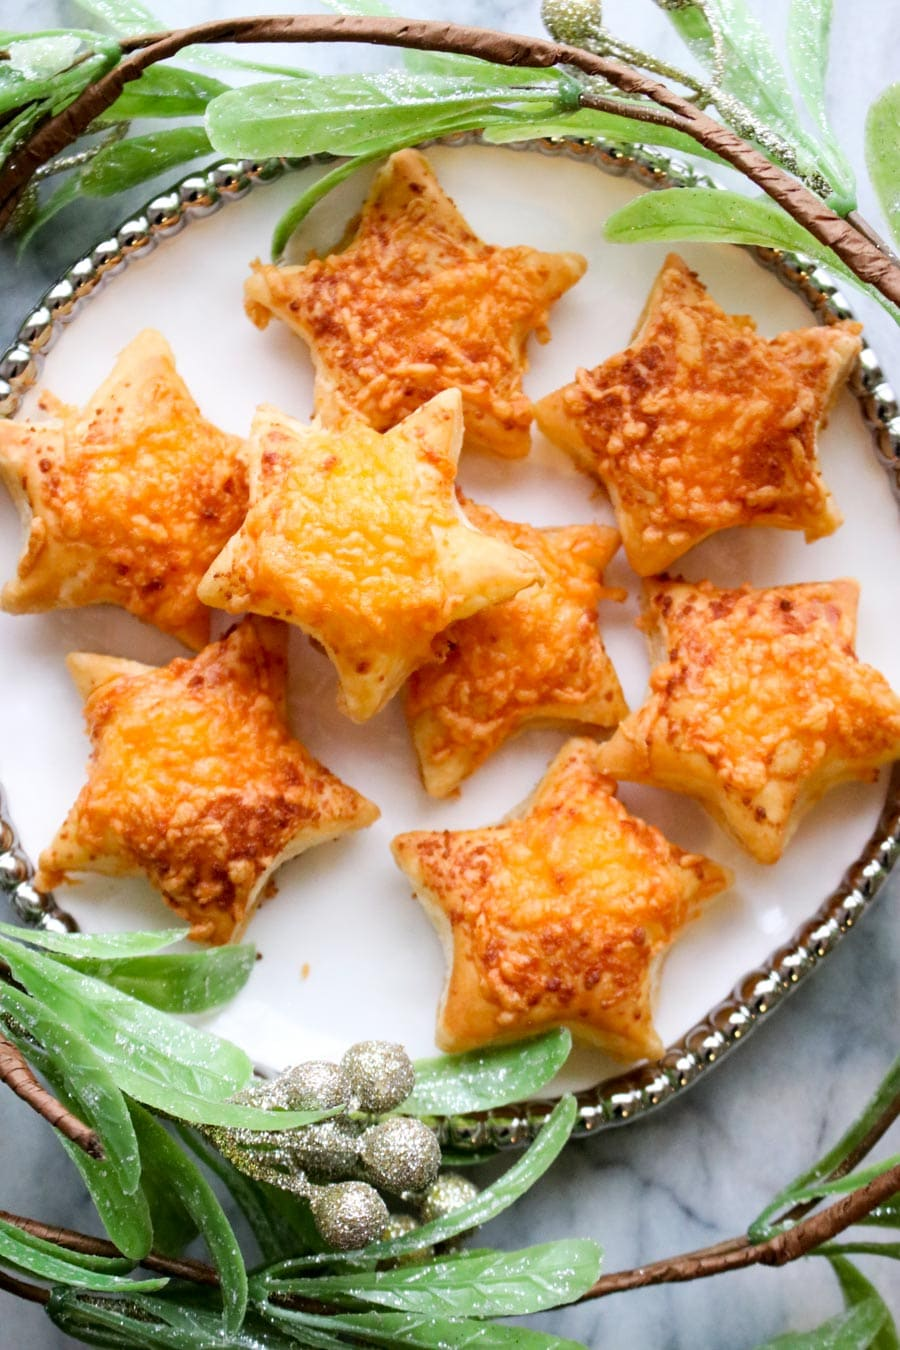 Plate of pastry stars